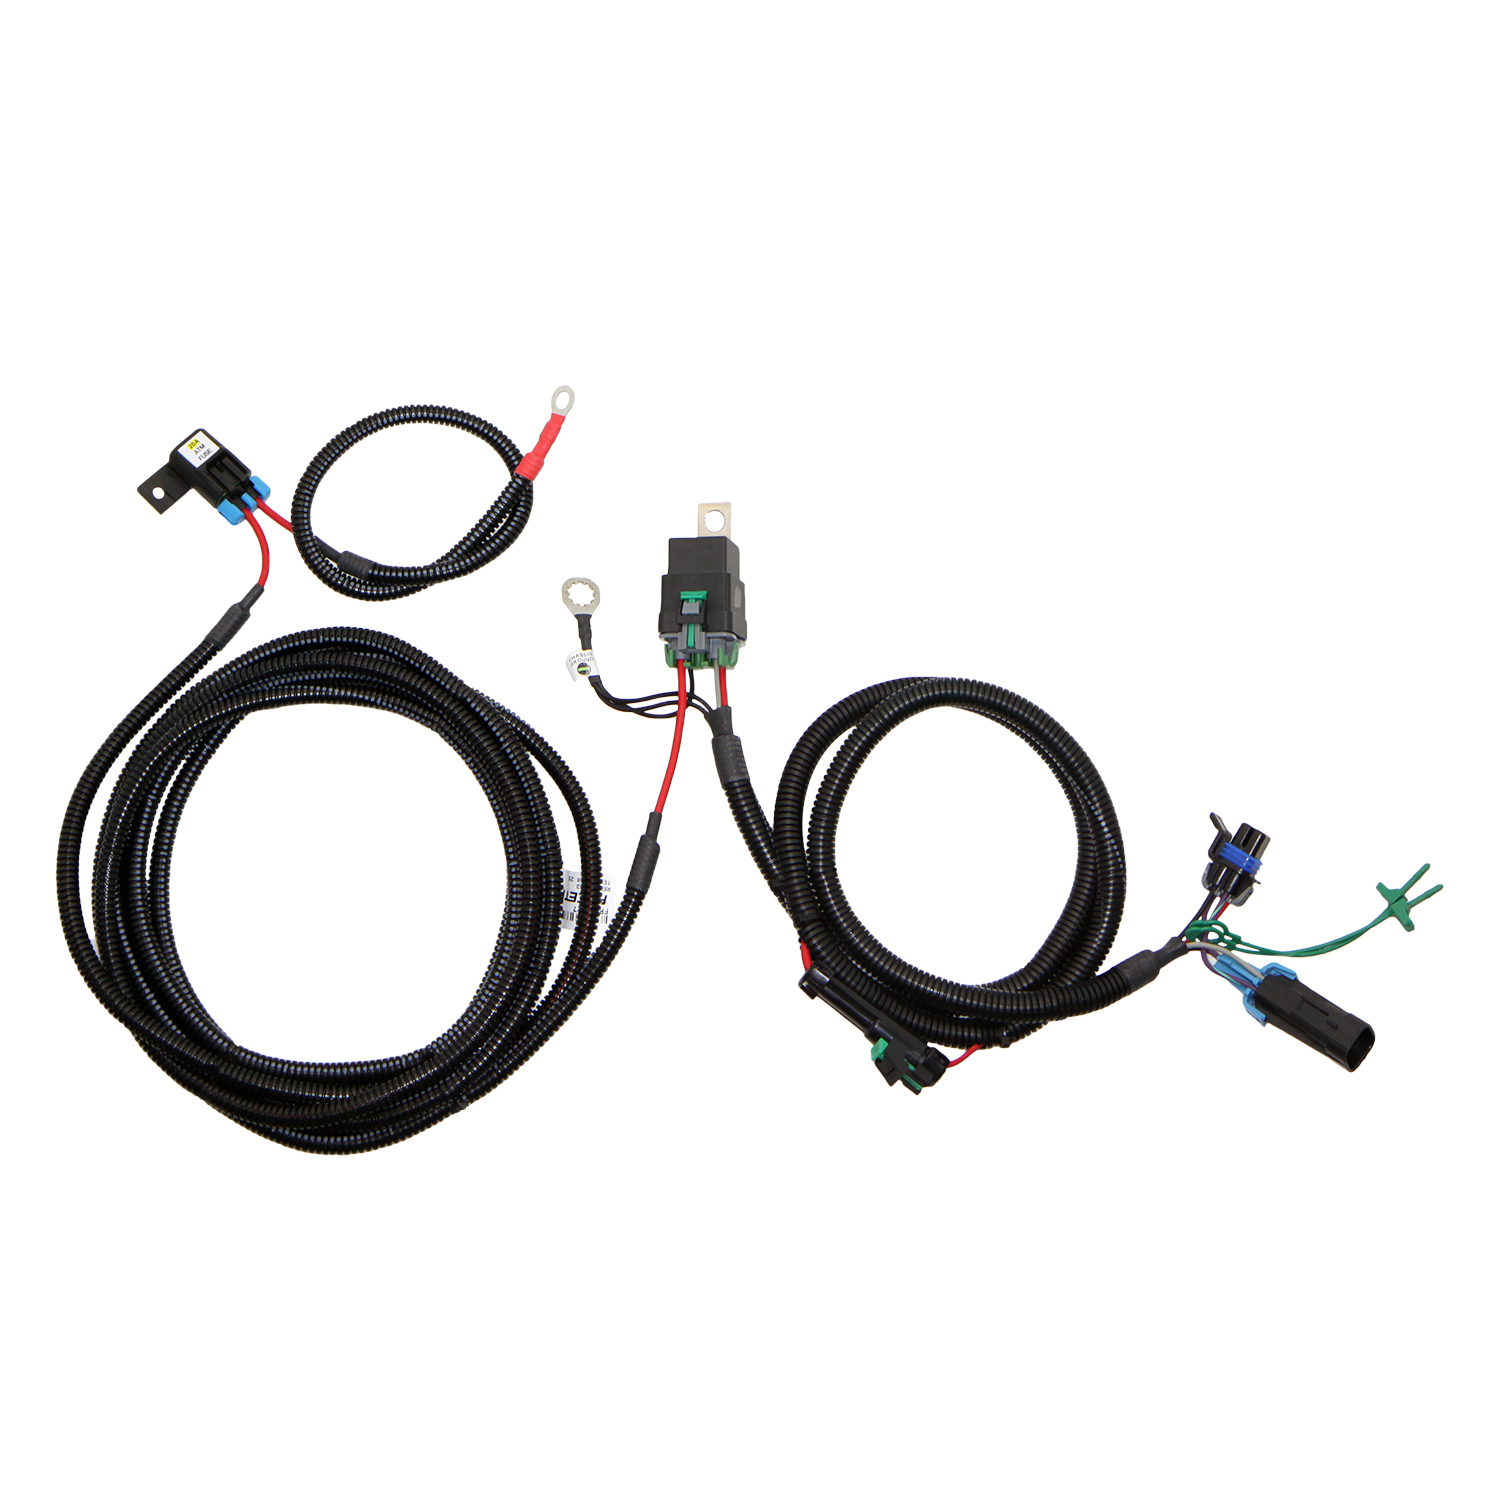 medium resolution of cadillac cts v fuel pump wiring harness fpwh 027 fuel pump direct tech wiring diagrams 2008 cadillac cts